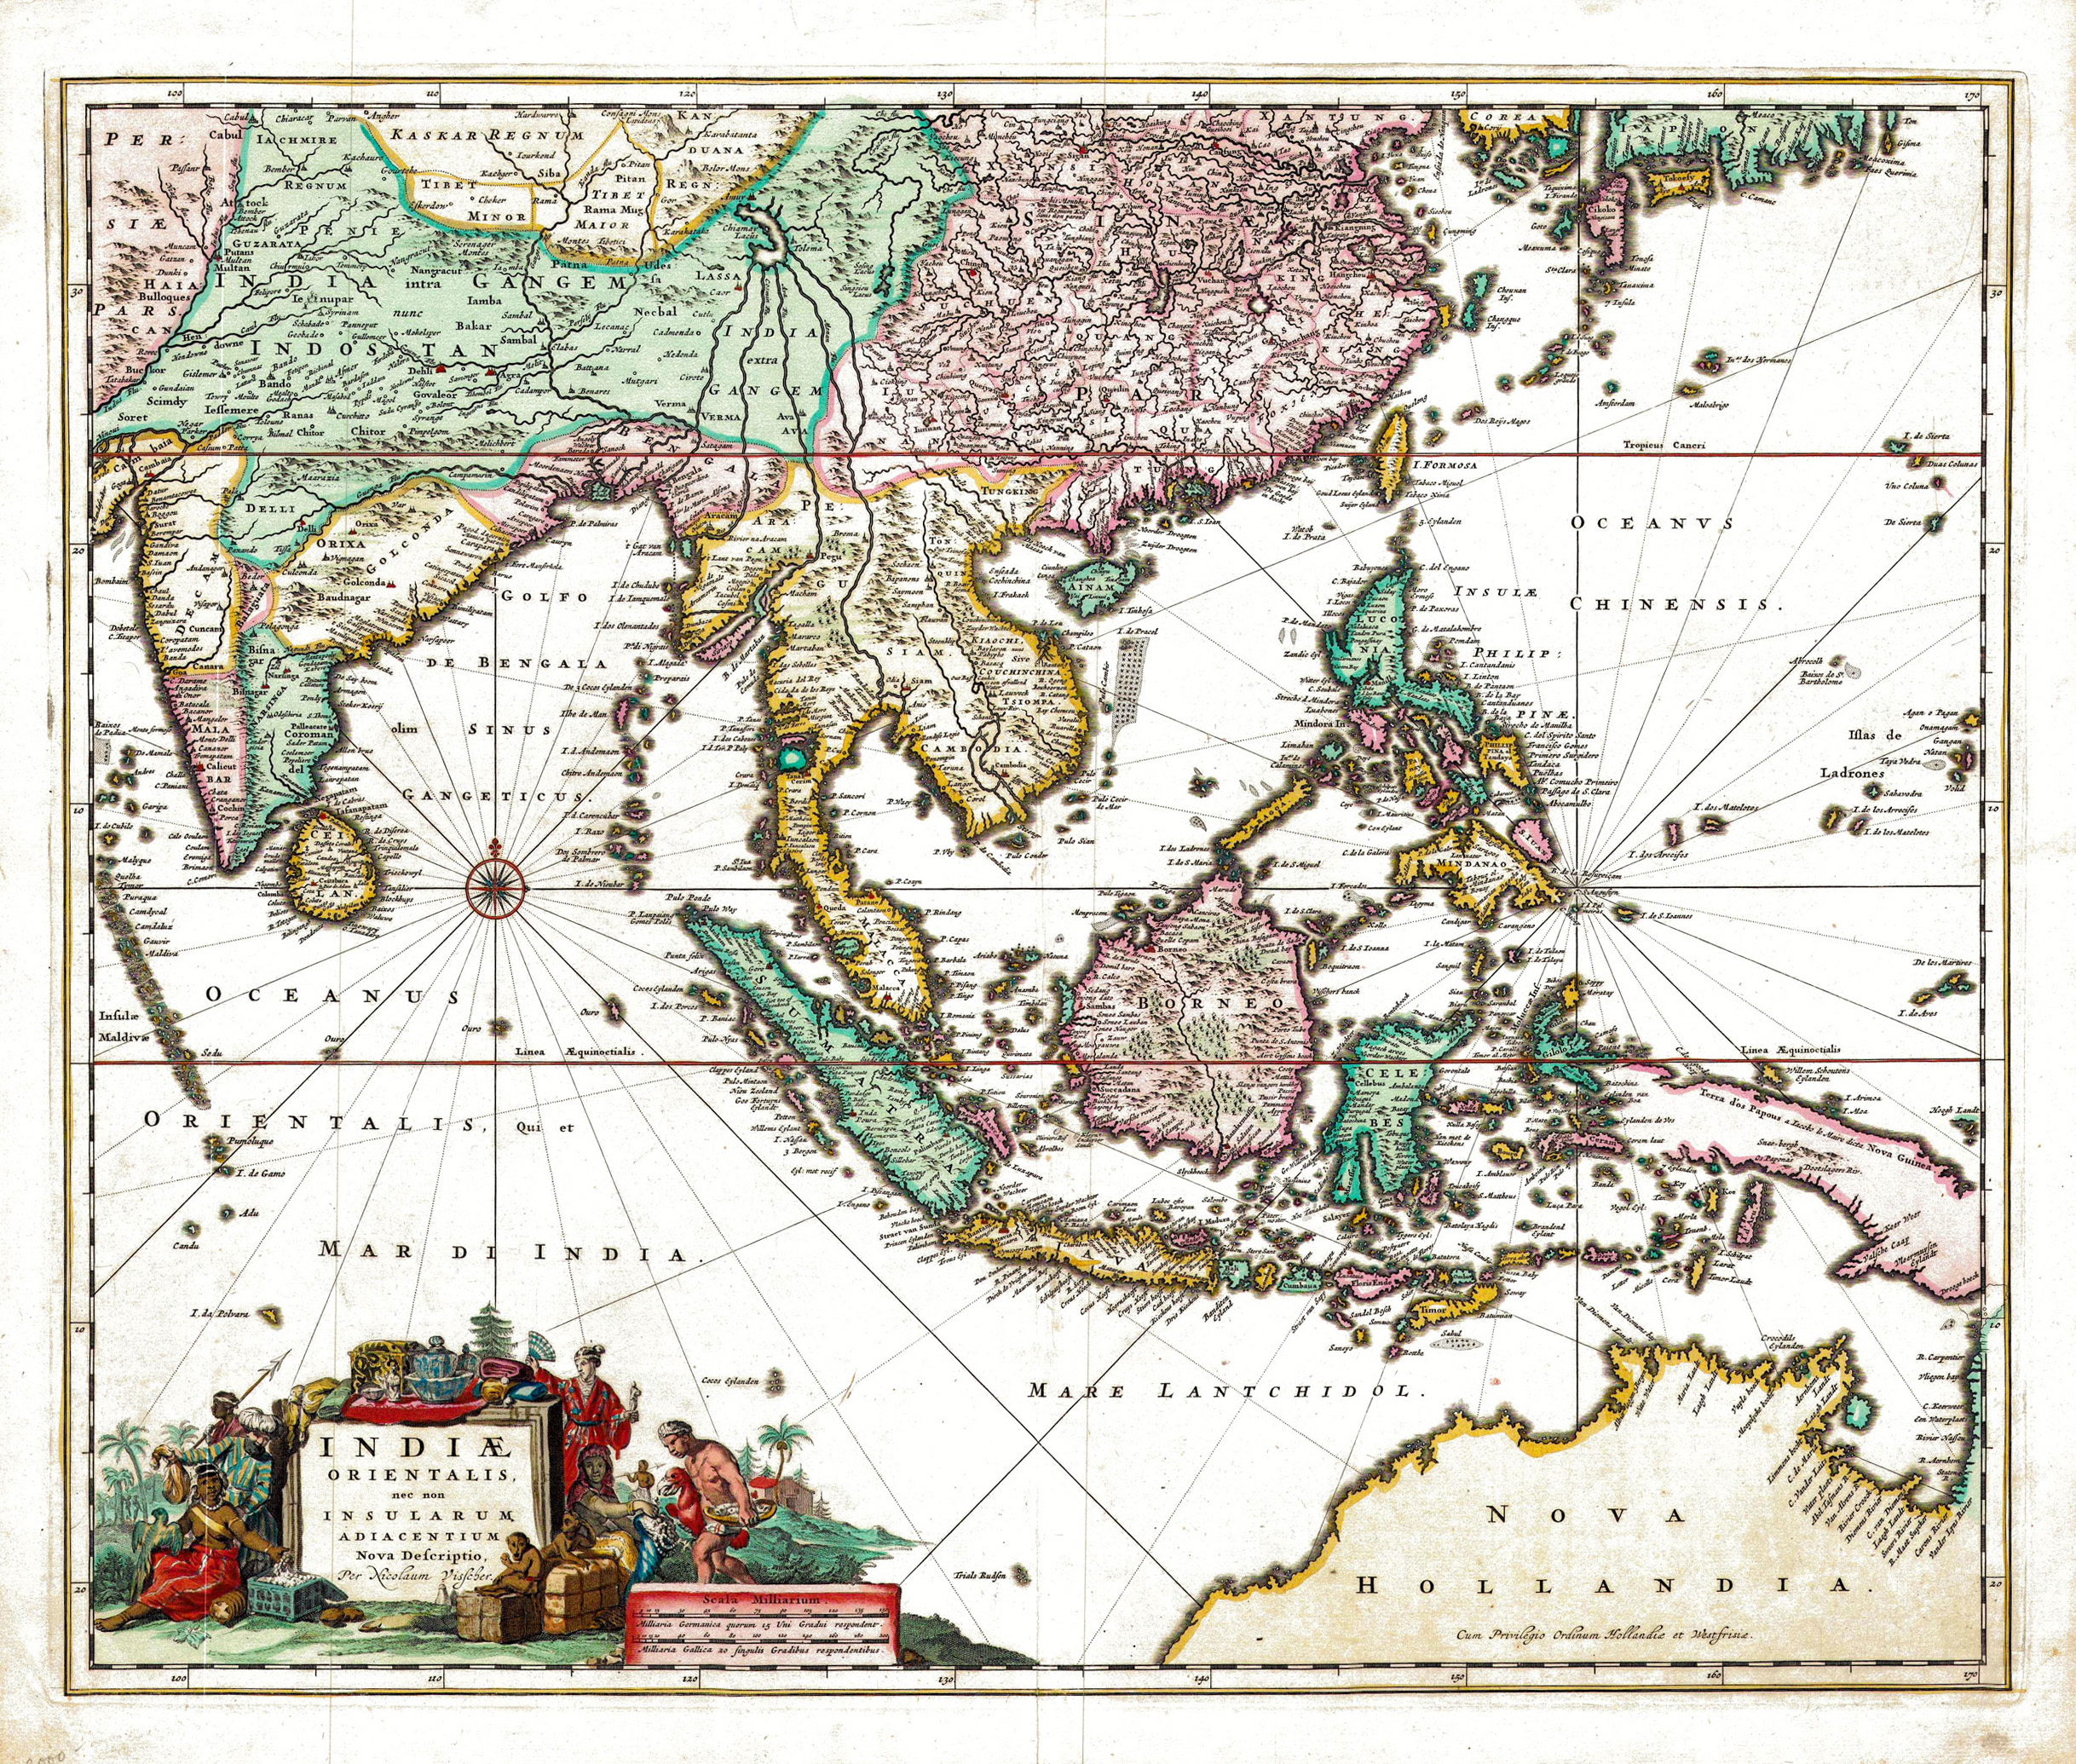 Antique Map of South-East Asia by Visscher (c.1670) - SOLD - Bartele ...